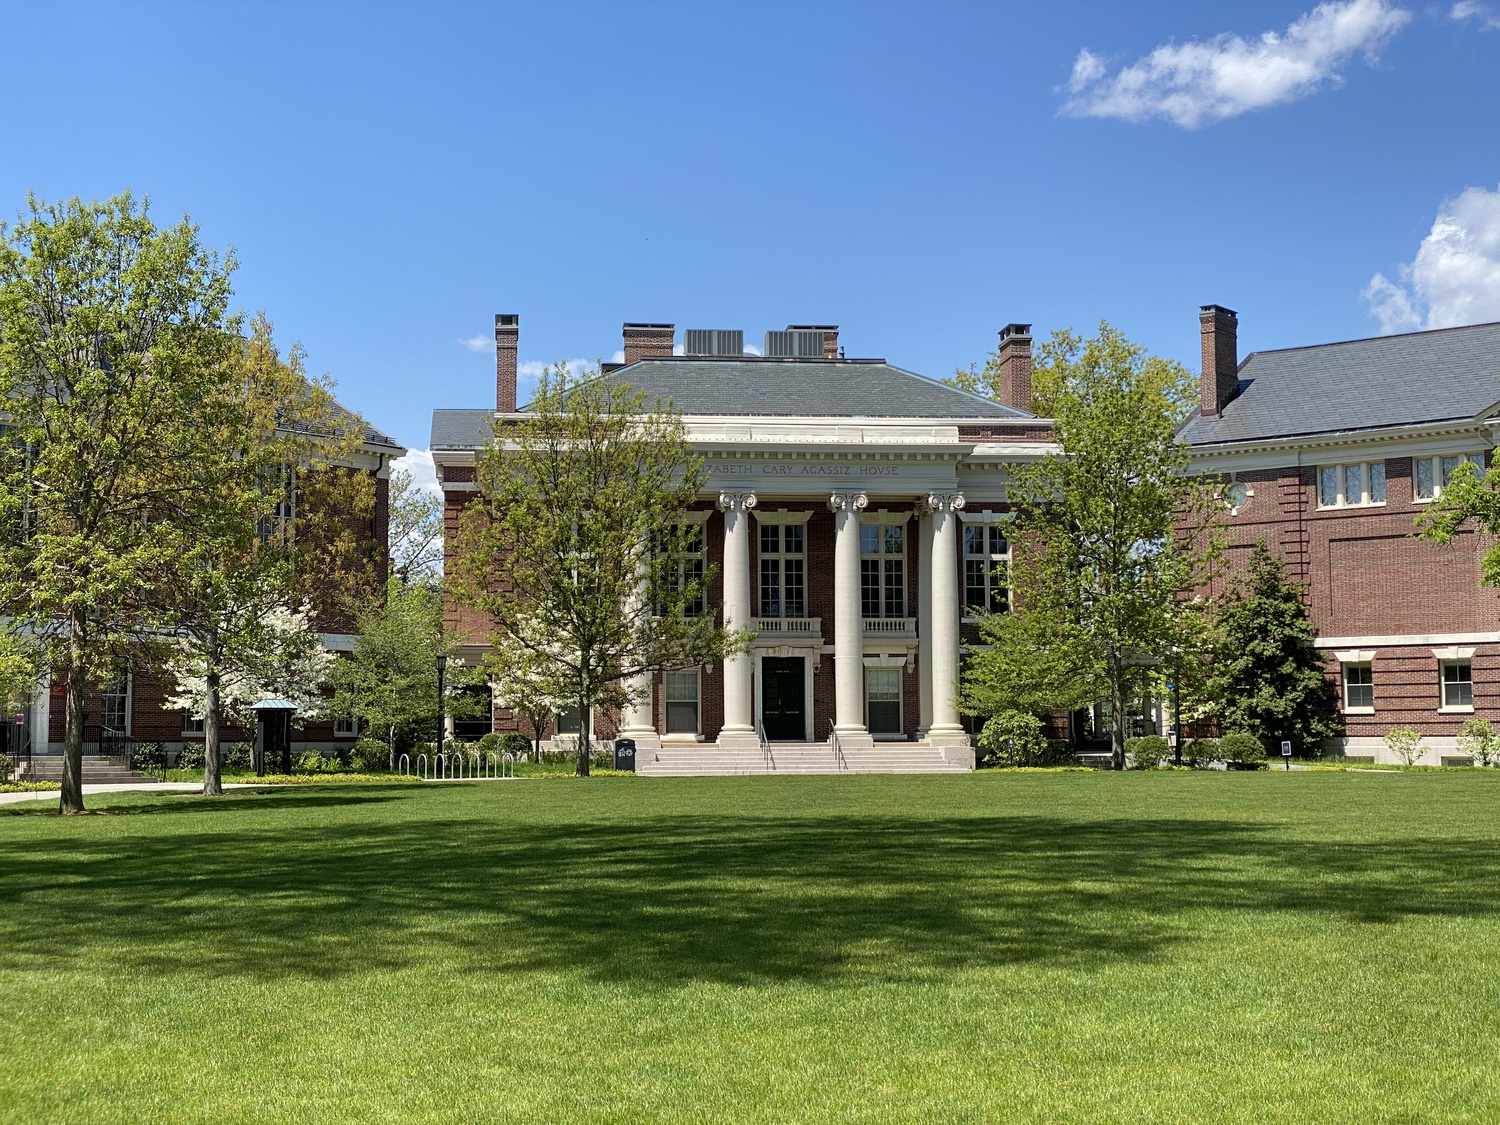 Harvard's admissions office lifted its standardized test policy due to challenges posed by the coronavirus.